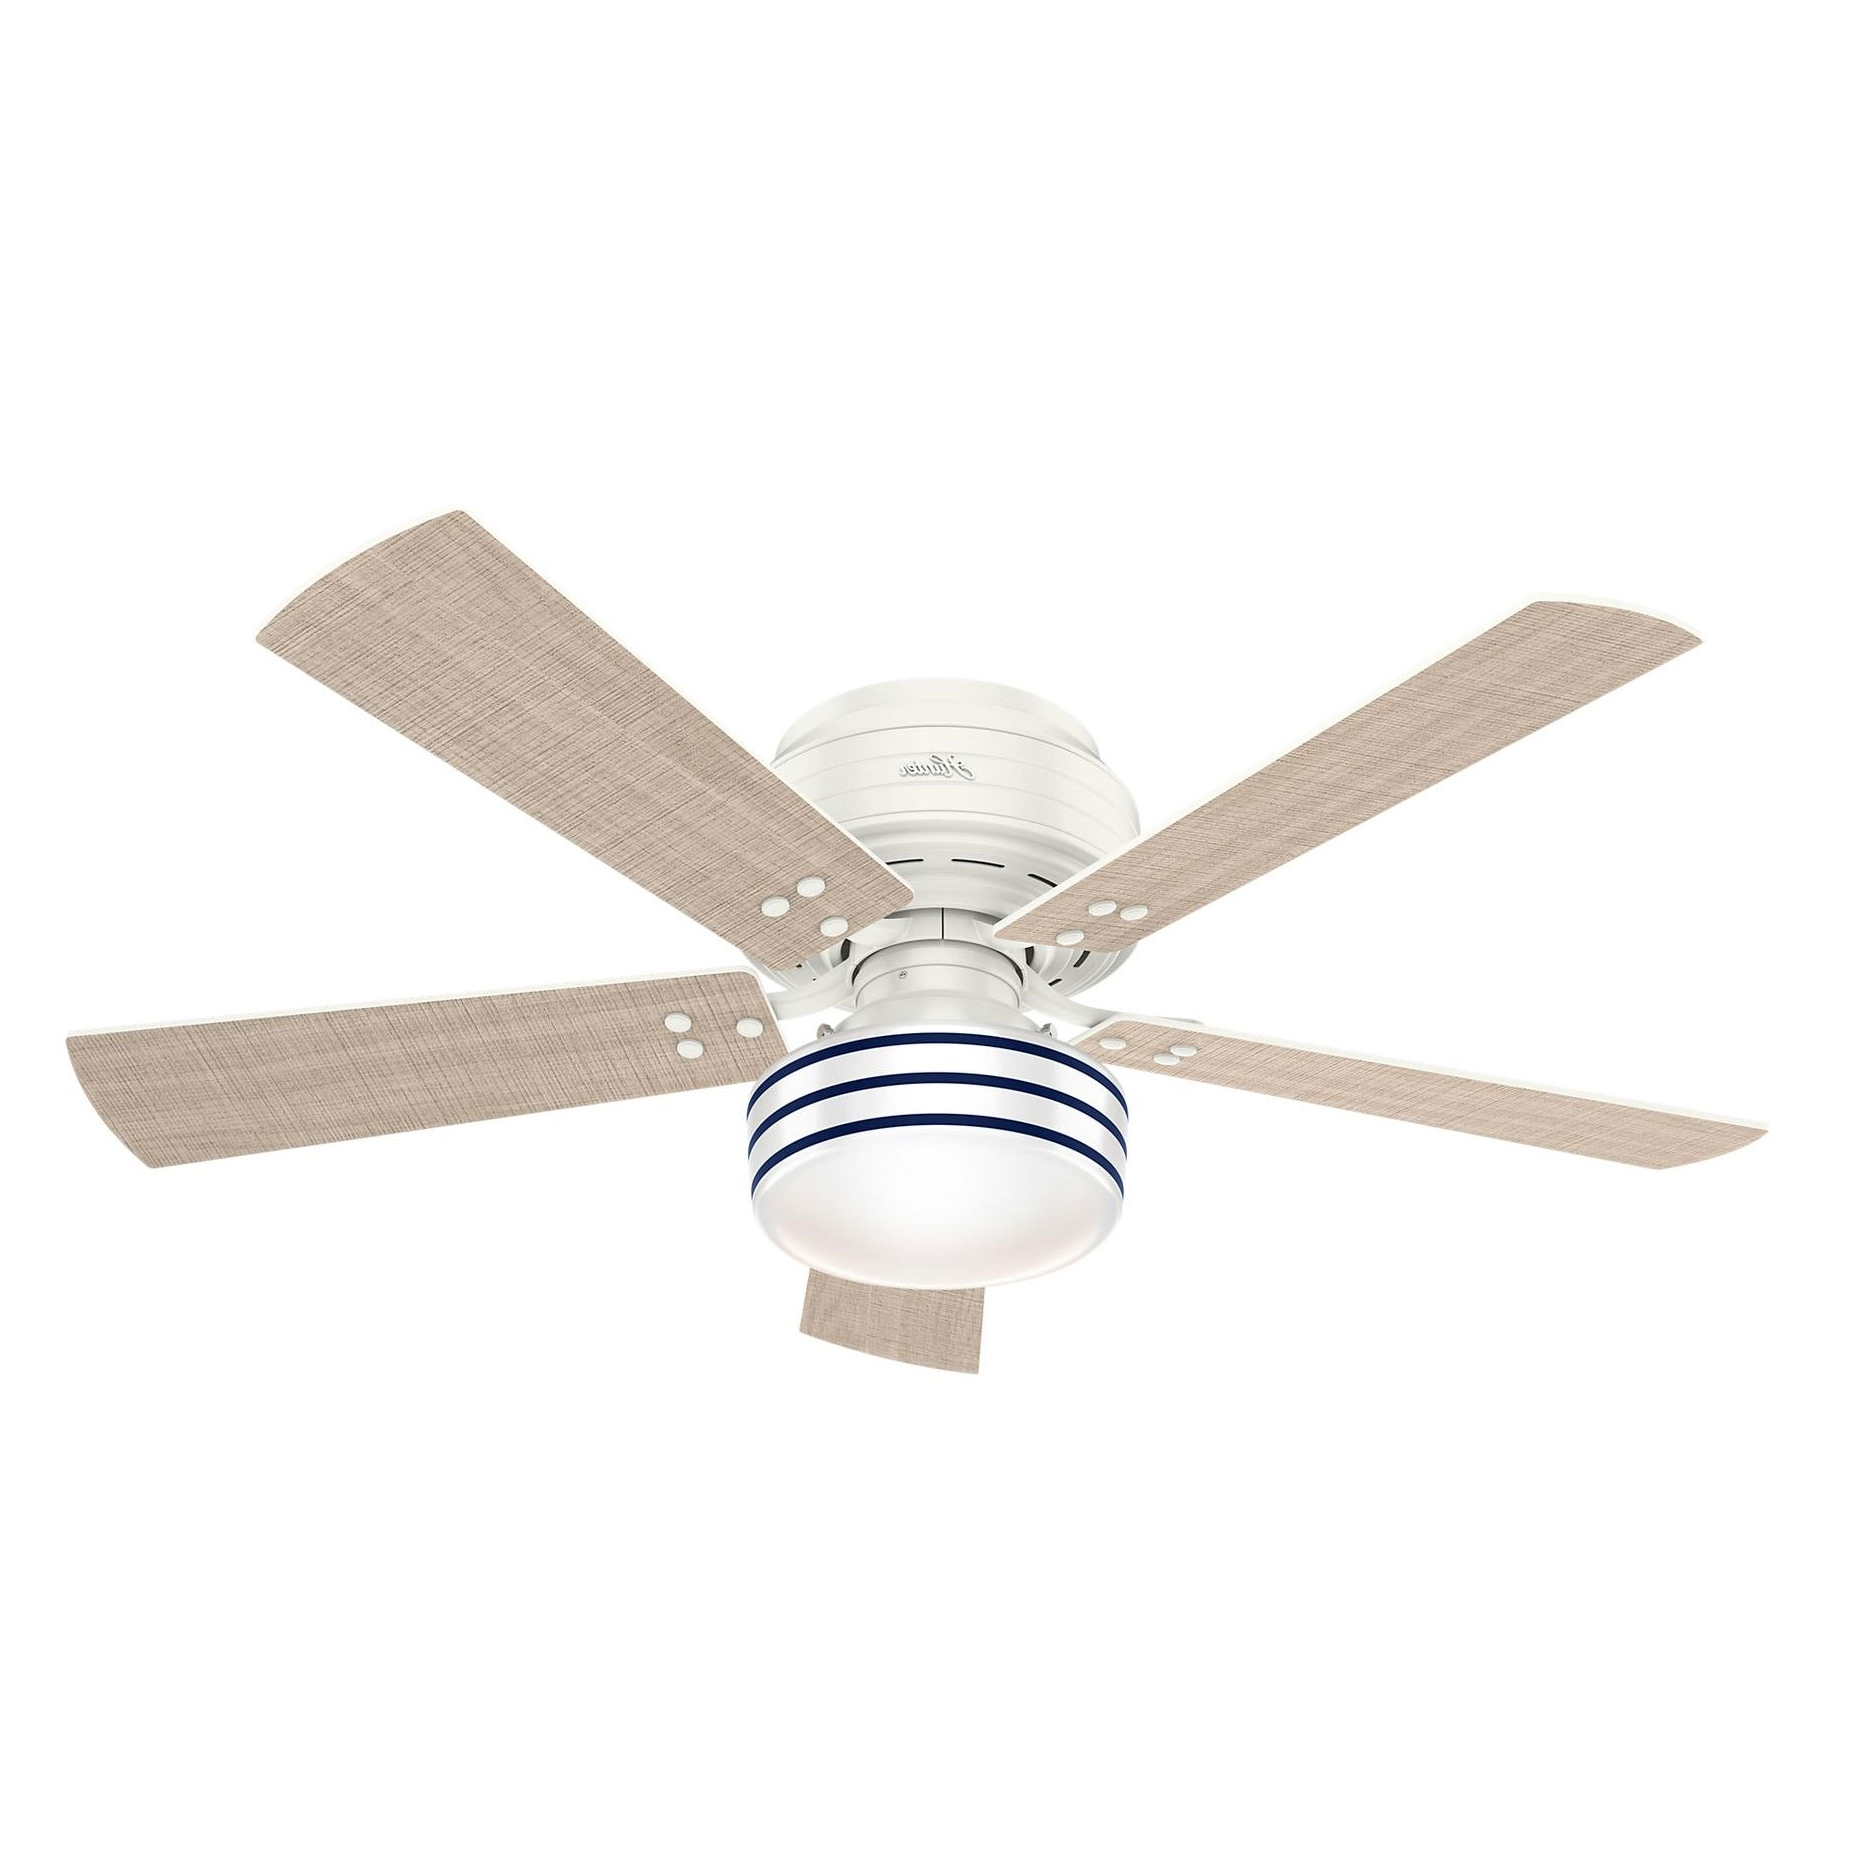 Cedar Key Low Profile Indoor/outdoor Ceiling Fan With Light Inside Newest Low Profile Outdoor Ceiling Fans With Lights (Gallery 18 of 20)